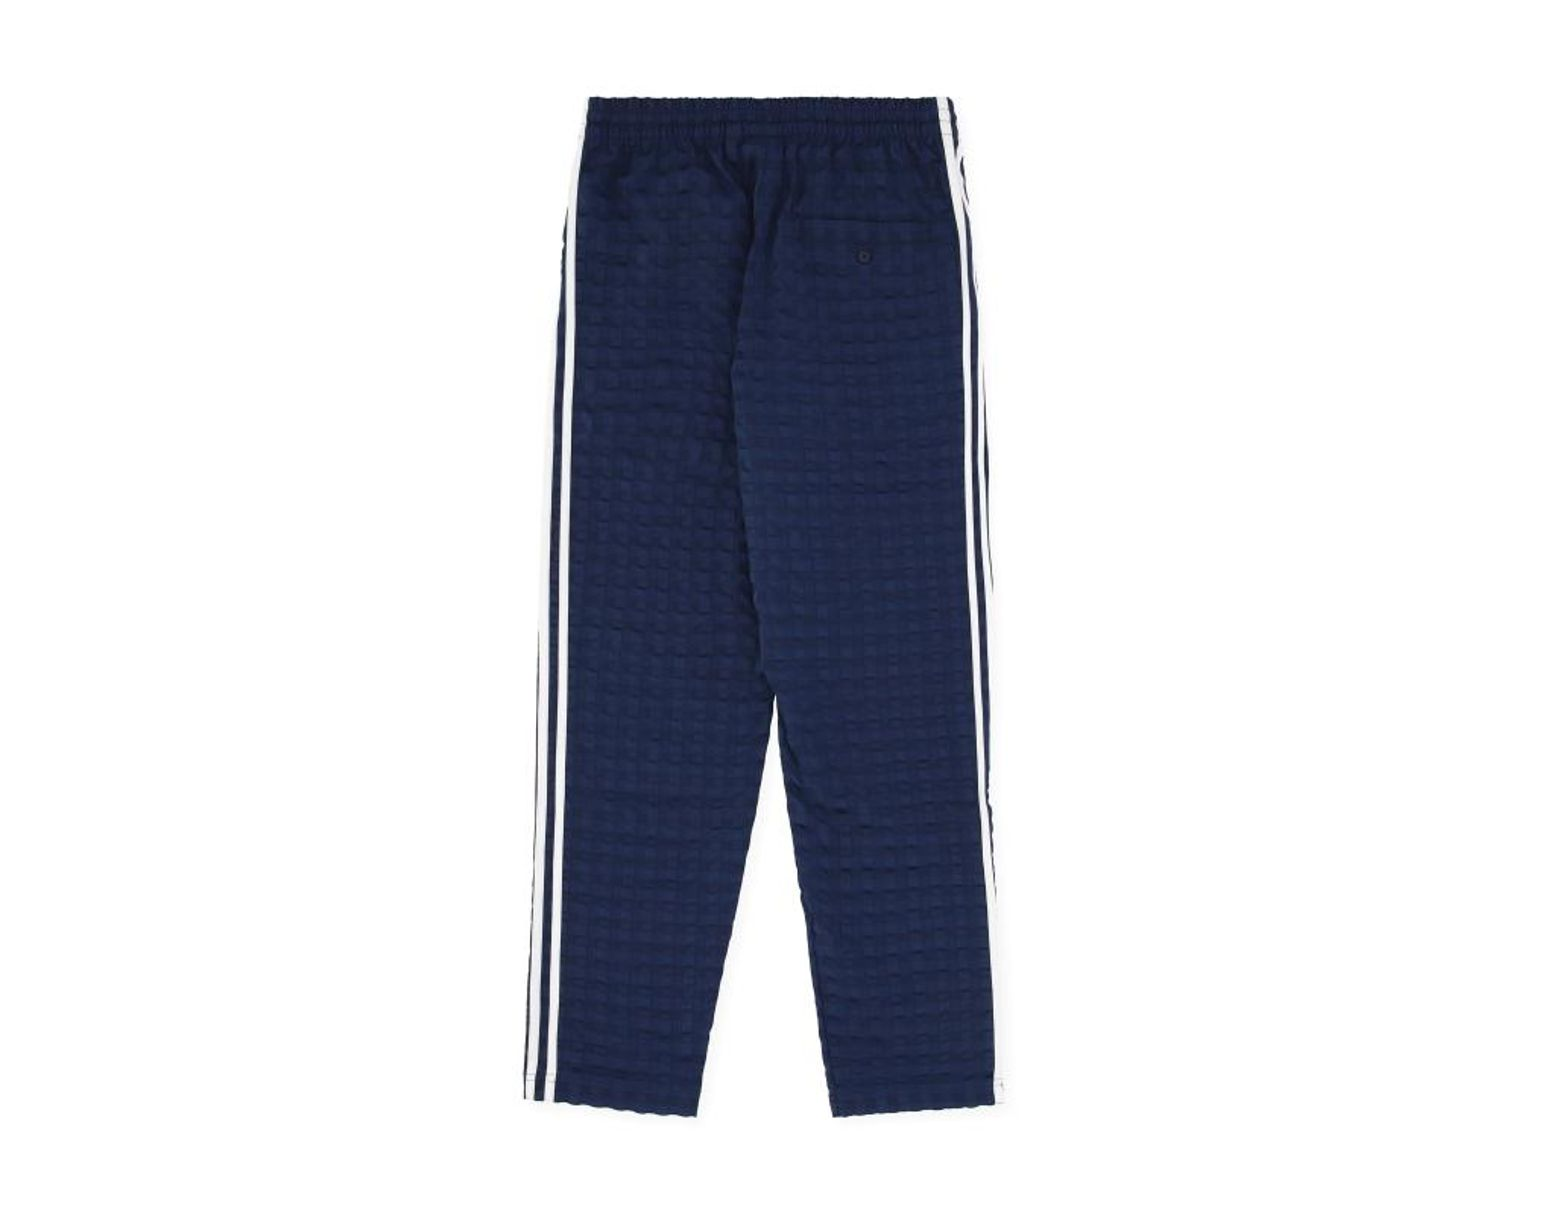 8335596d4 Lyst - adidas Originals Banyan 3-stripes Pants in Blue for Men